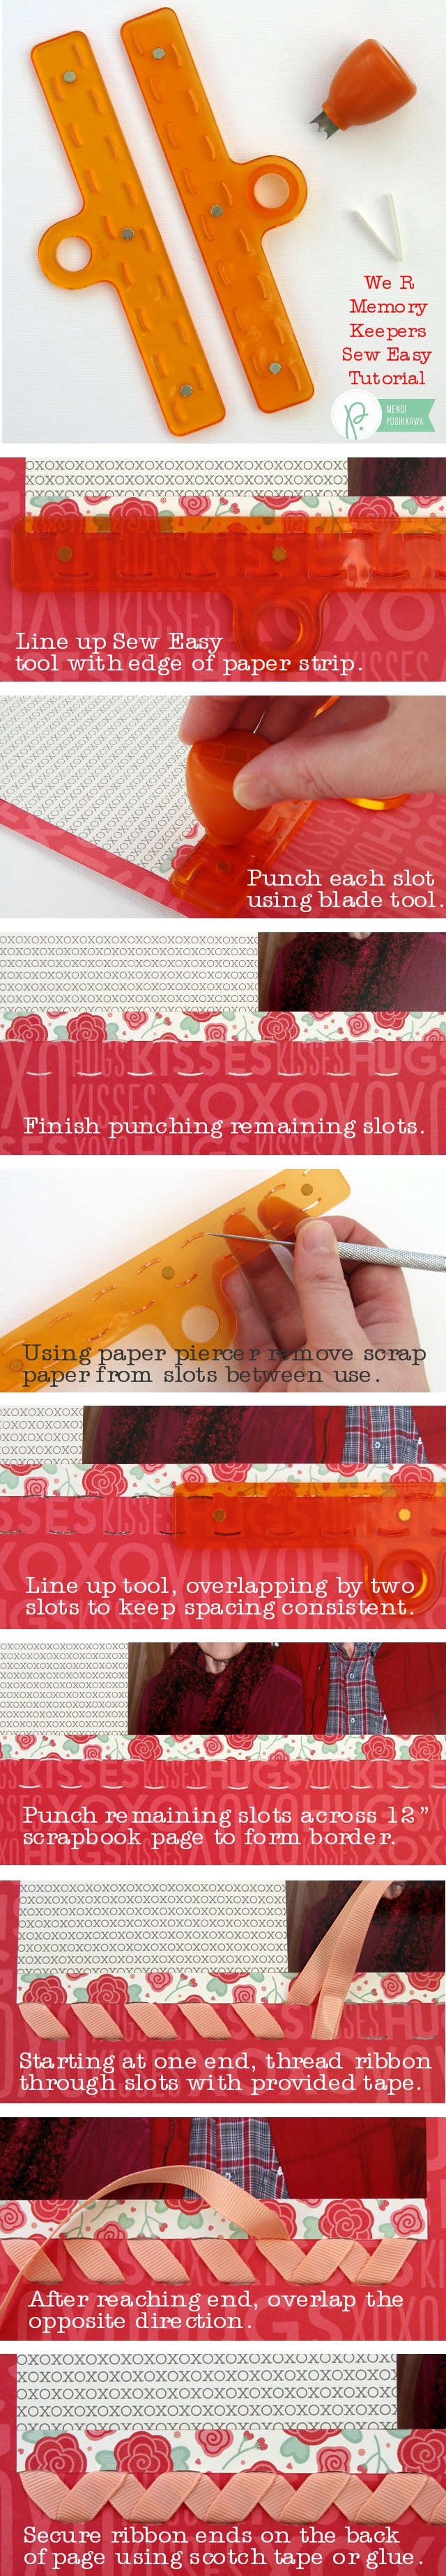 We R Memory Keepers Sew Ribbon Tutorial by Mendi Yoshikawa using #WeGoTogether collection from @PebblesInc. @SnippetsByMendi